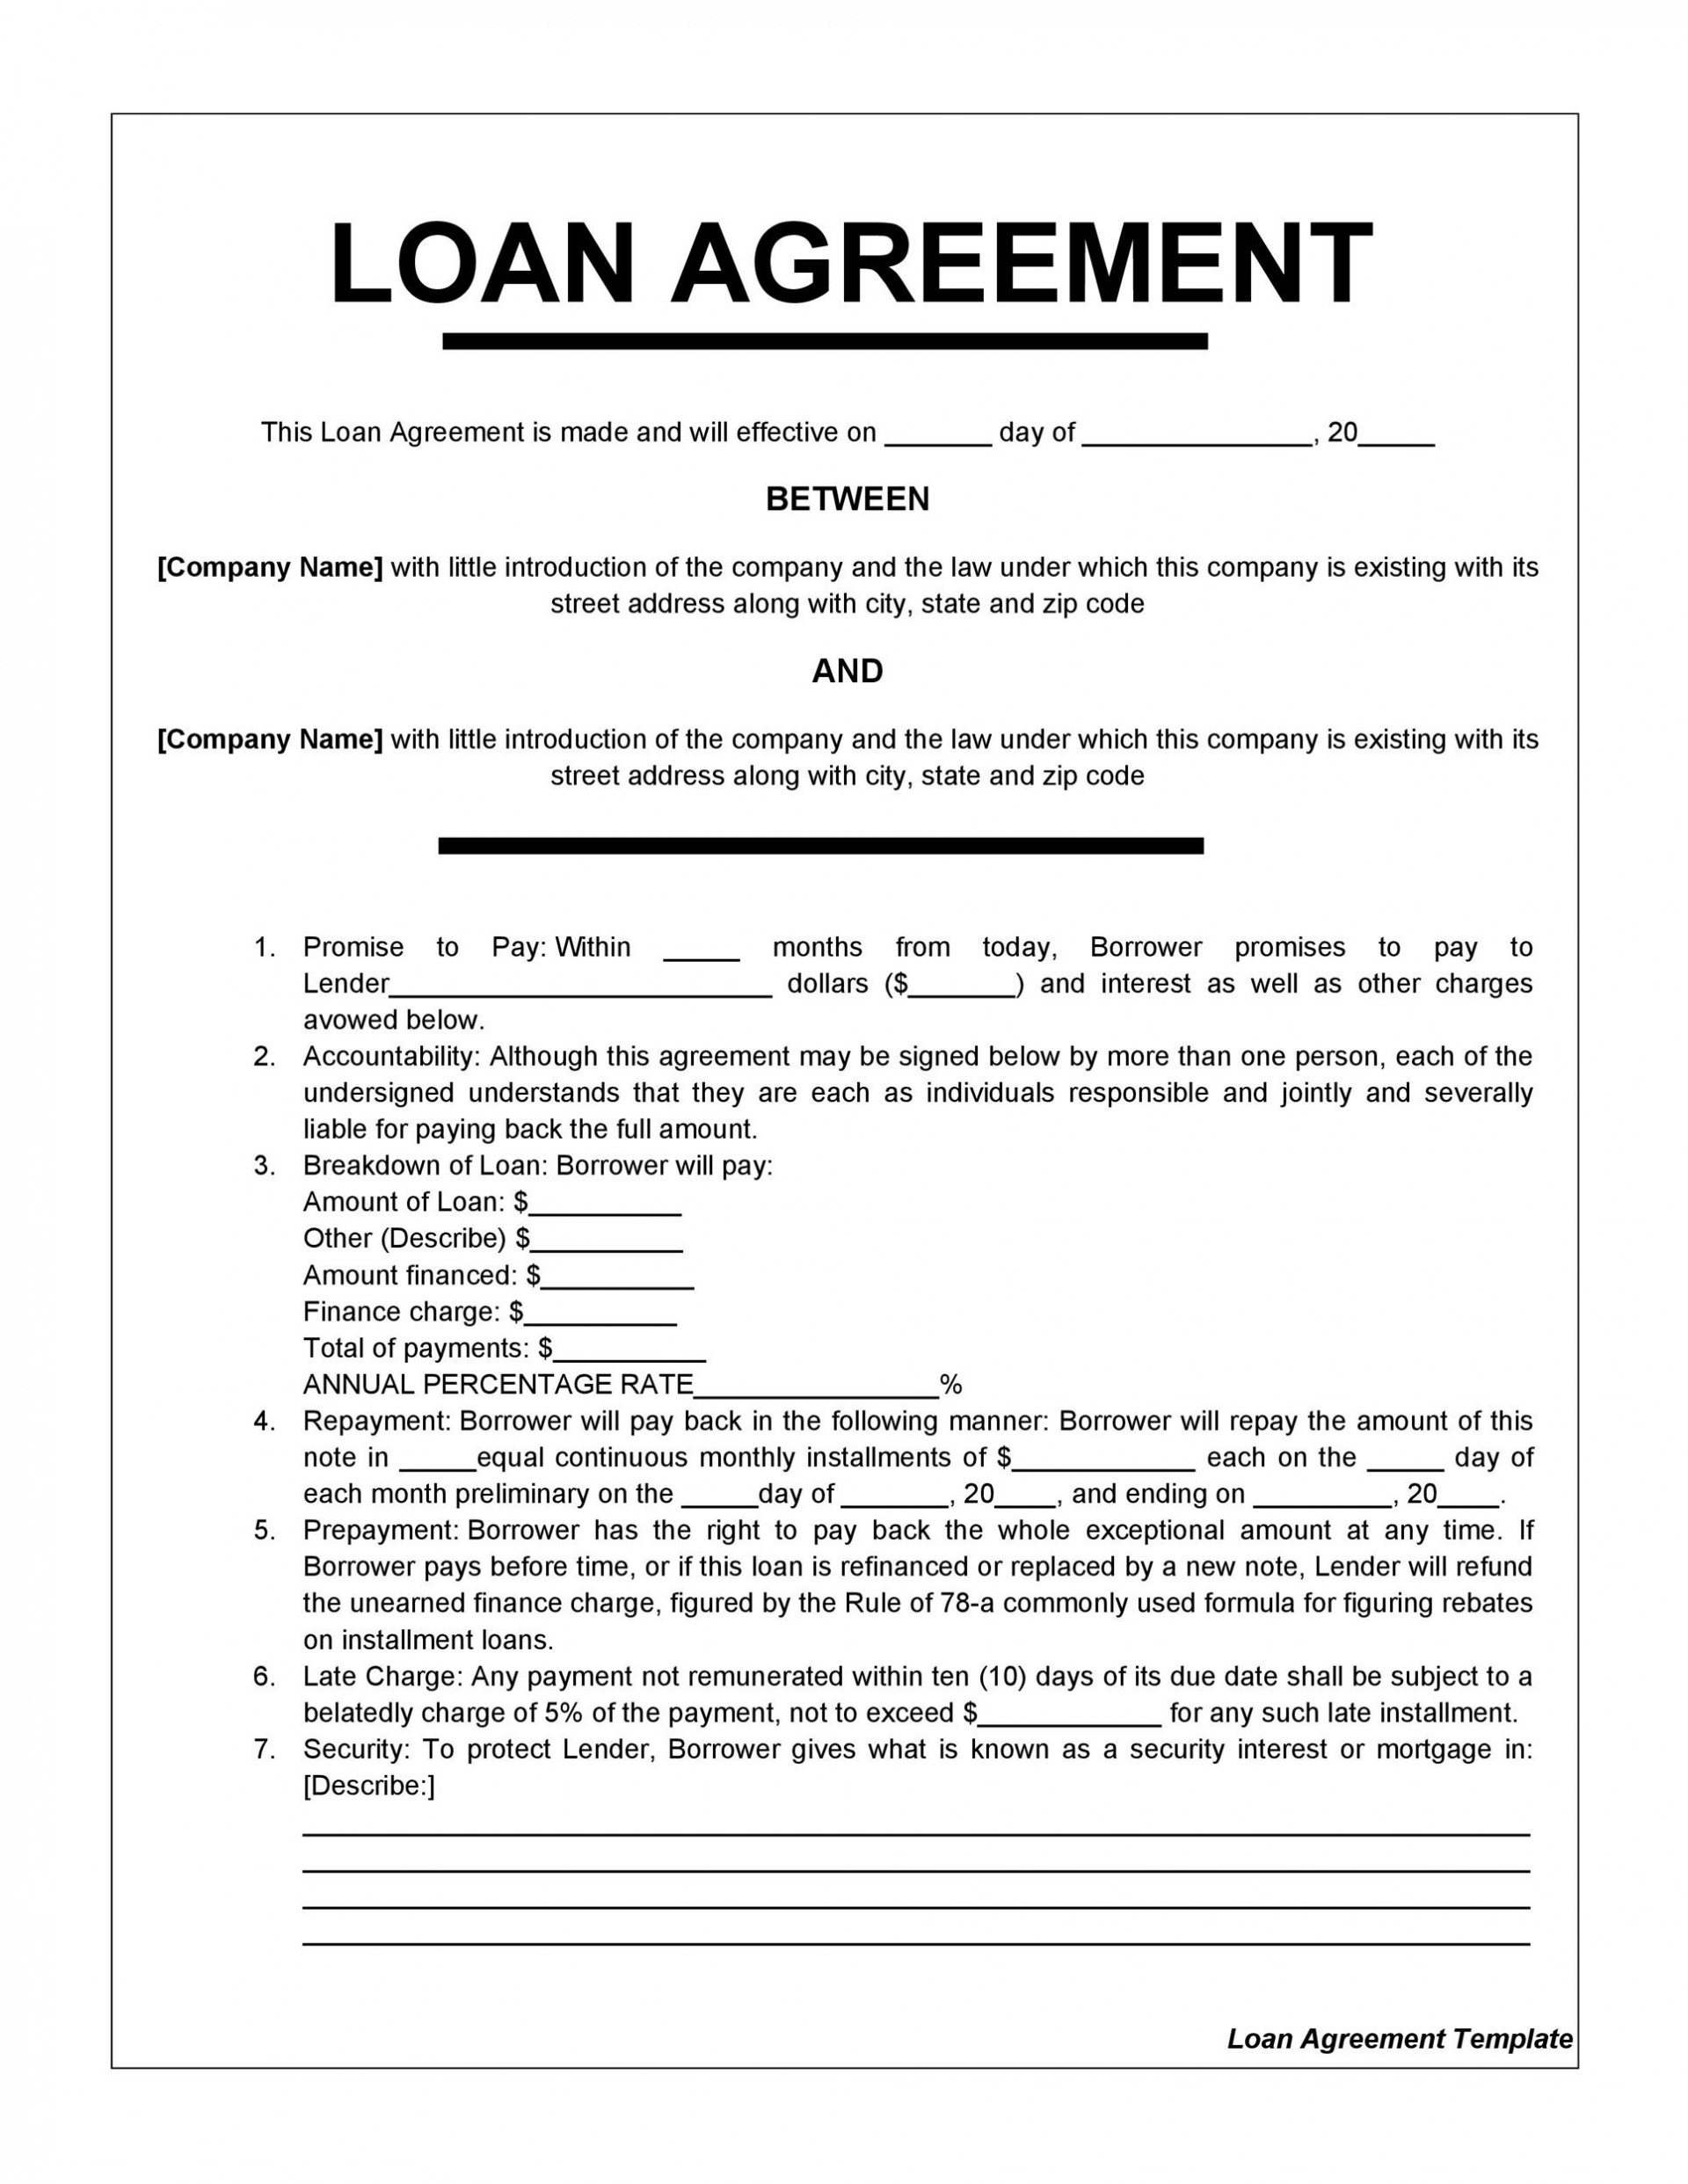 007 Fearsome Loan Agreement Template Free Image  Word Nz Family Uk1920